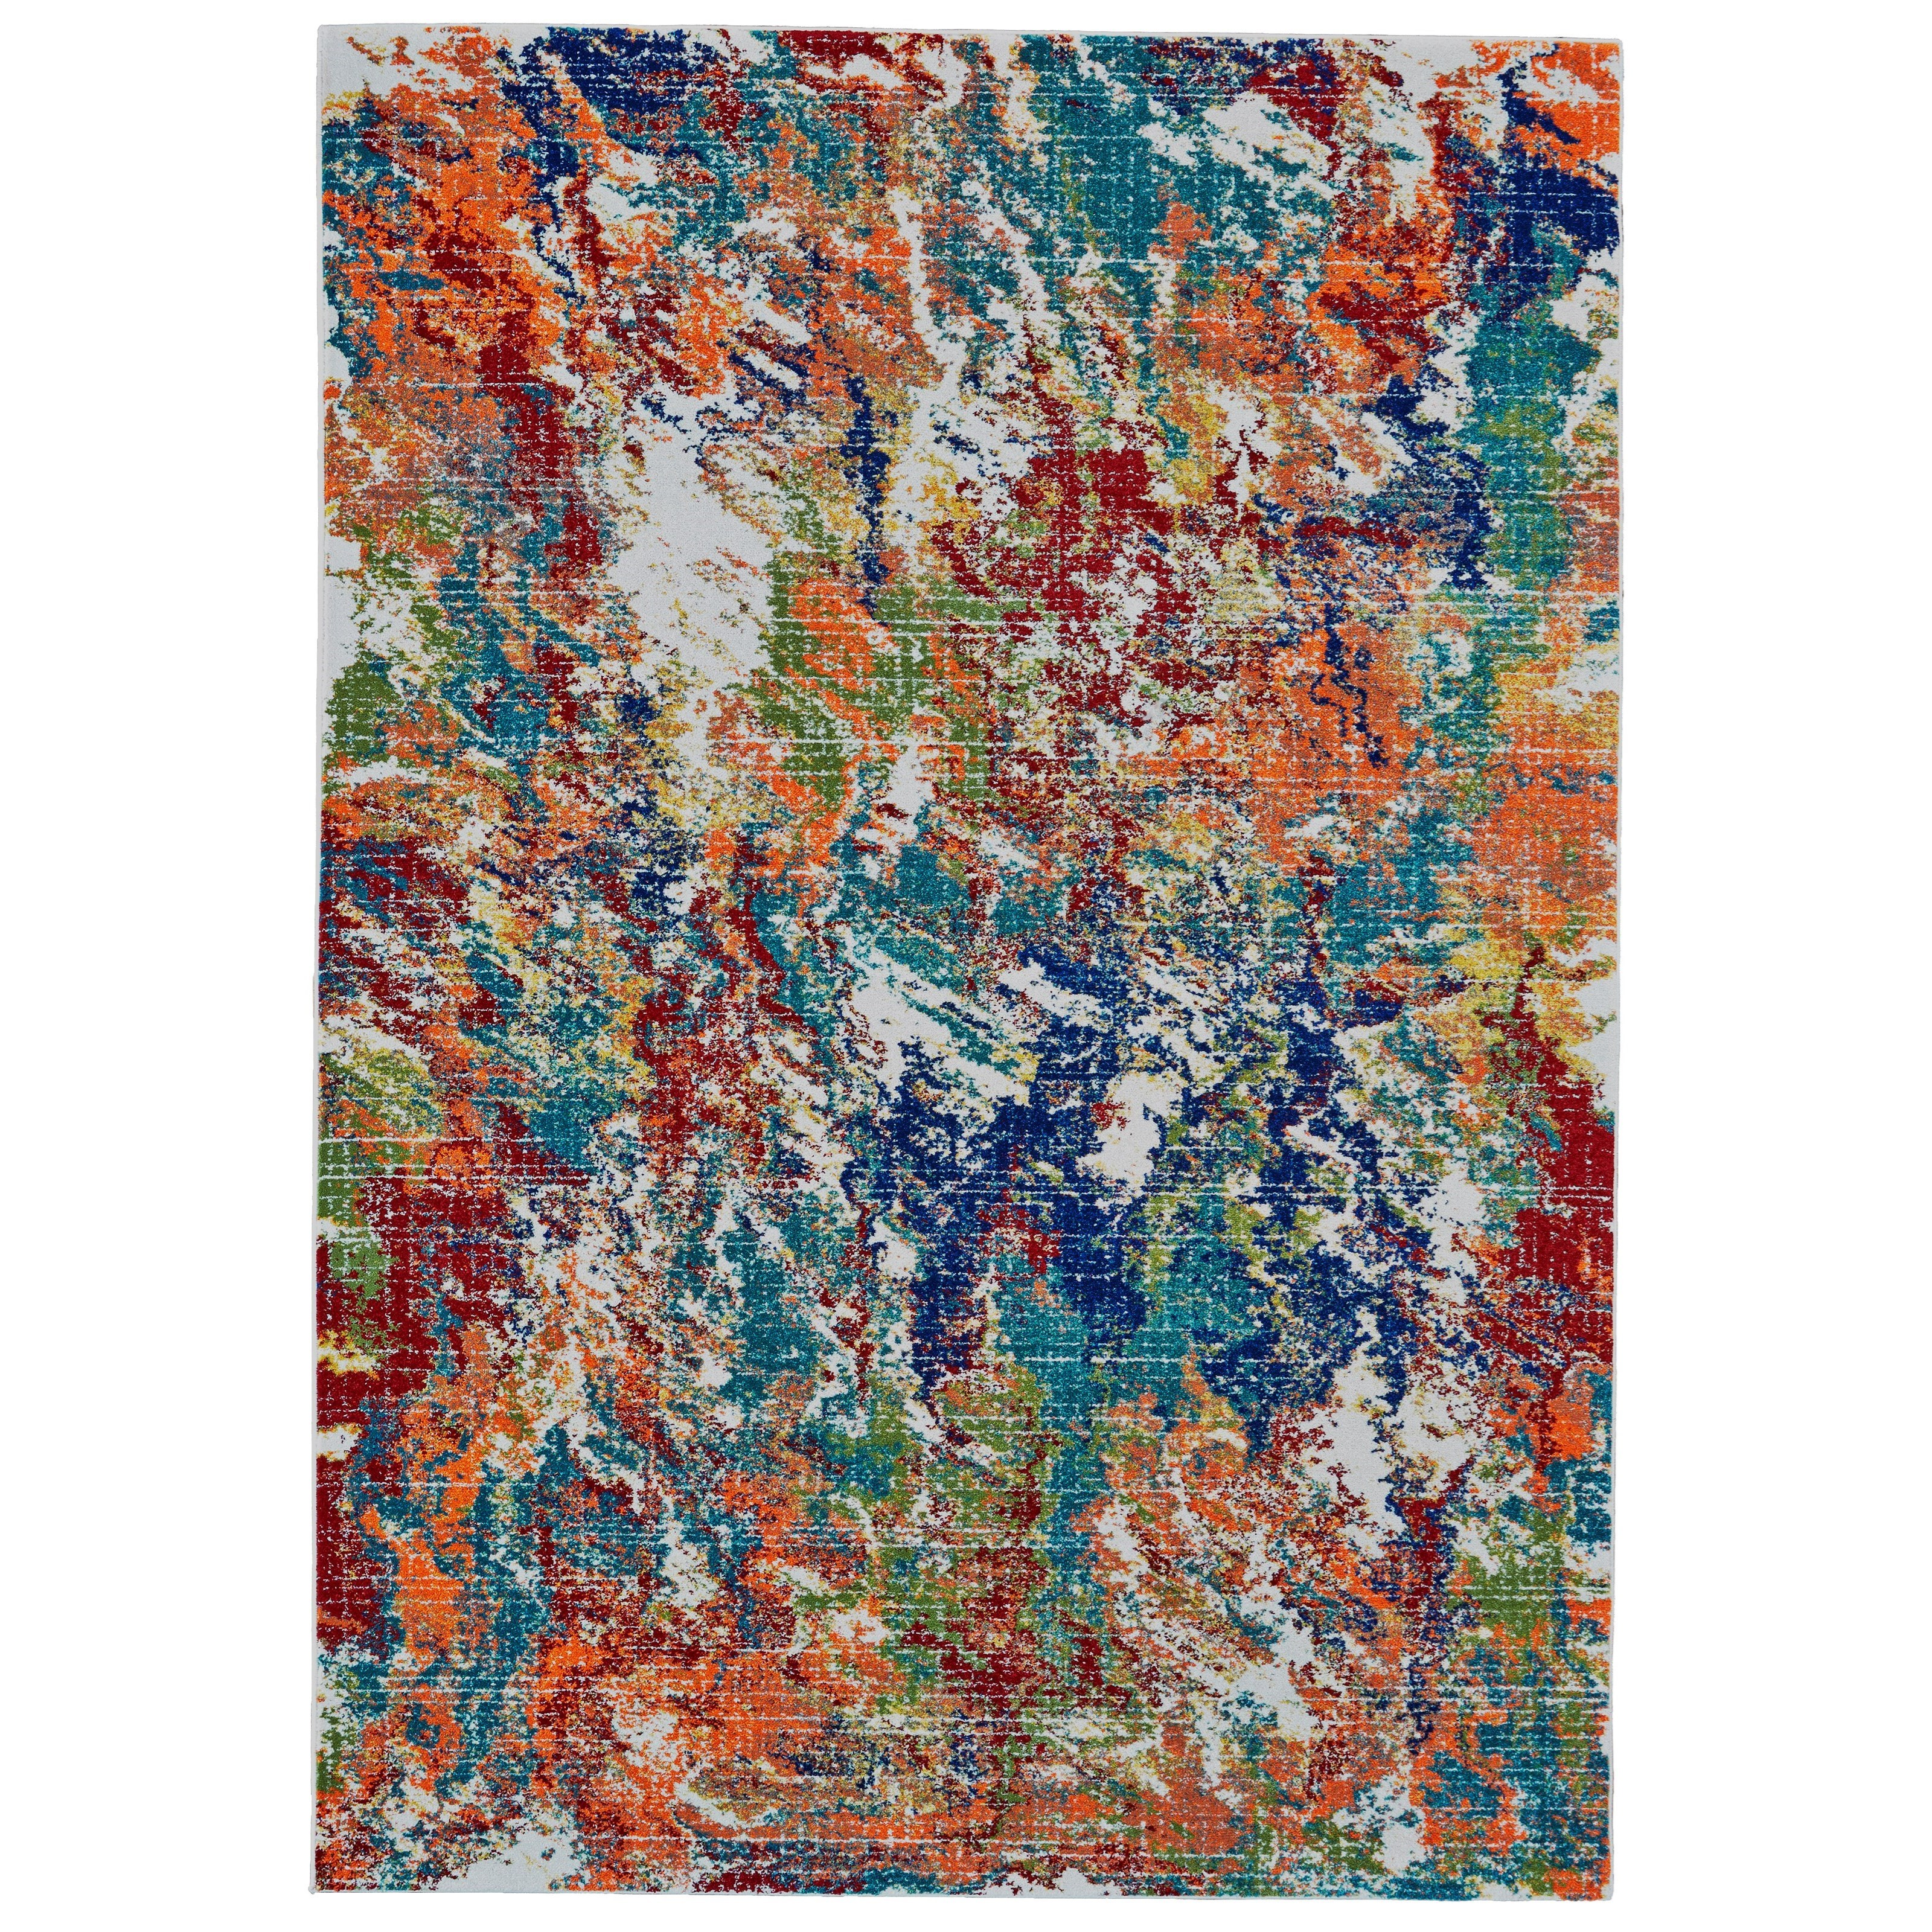 Archean Vacation 8' X 11' Area Rug by Feizy Rugs at Sprintz Furniture